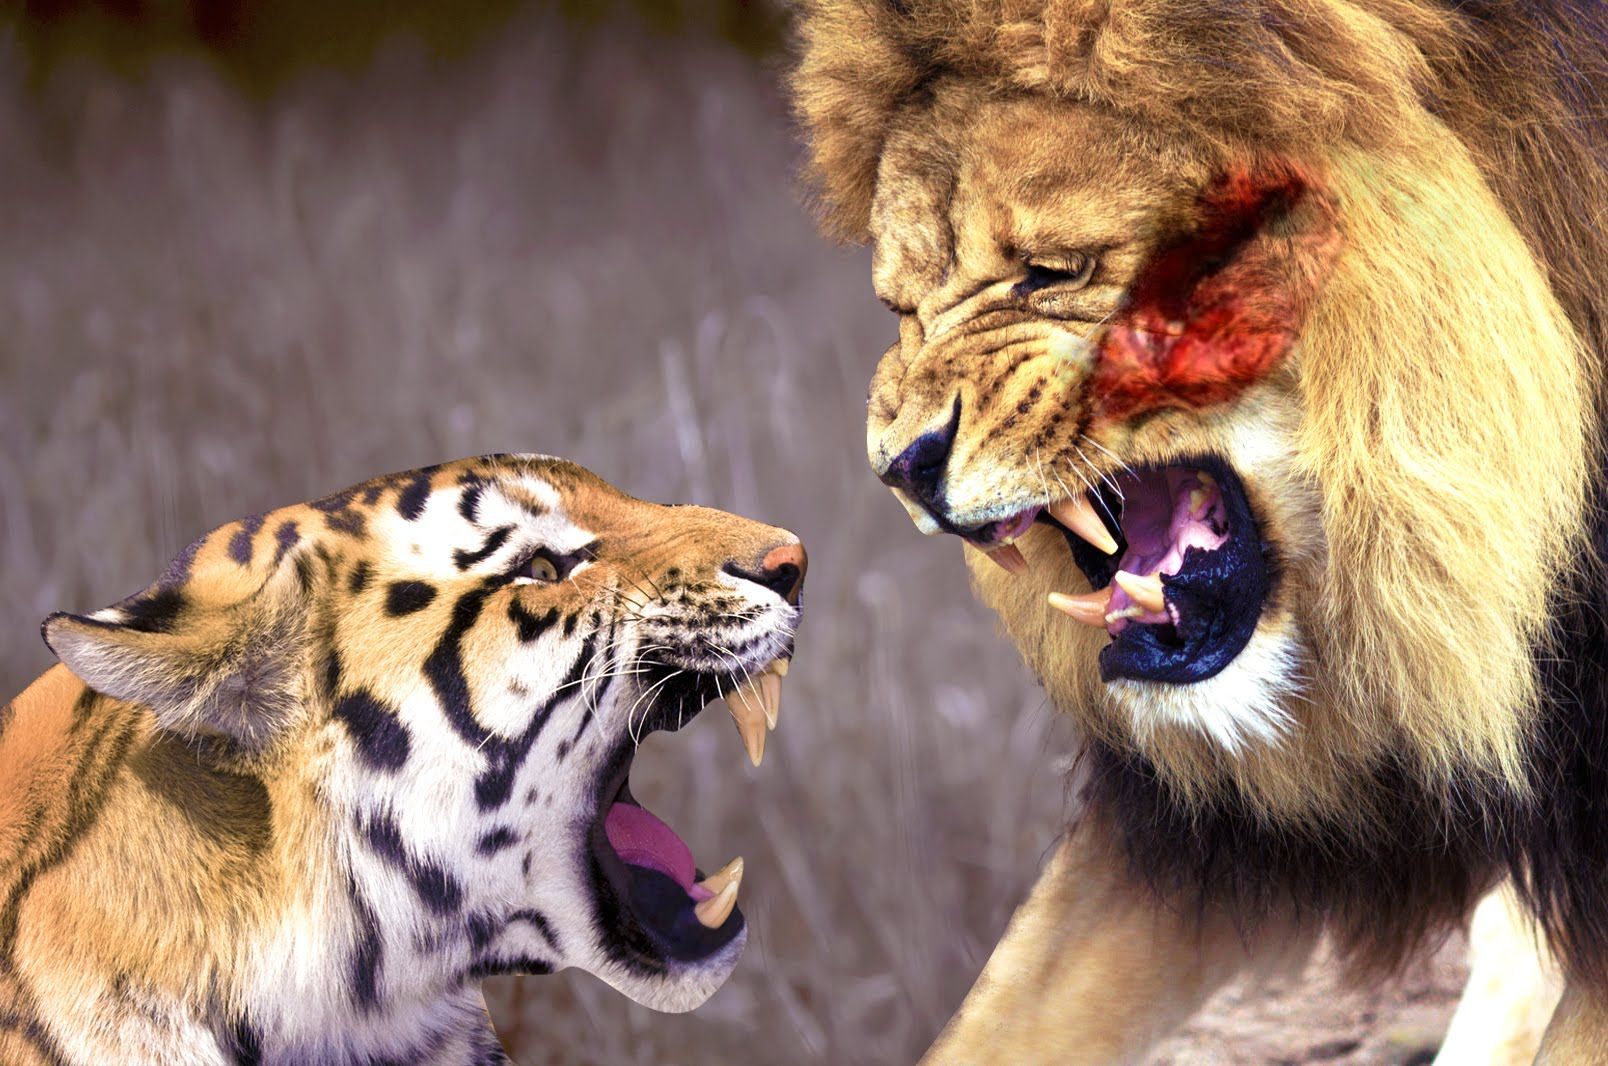 Lion vs Tiger (Only Real Fight) - One Will Die | Animals ...